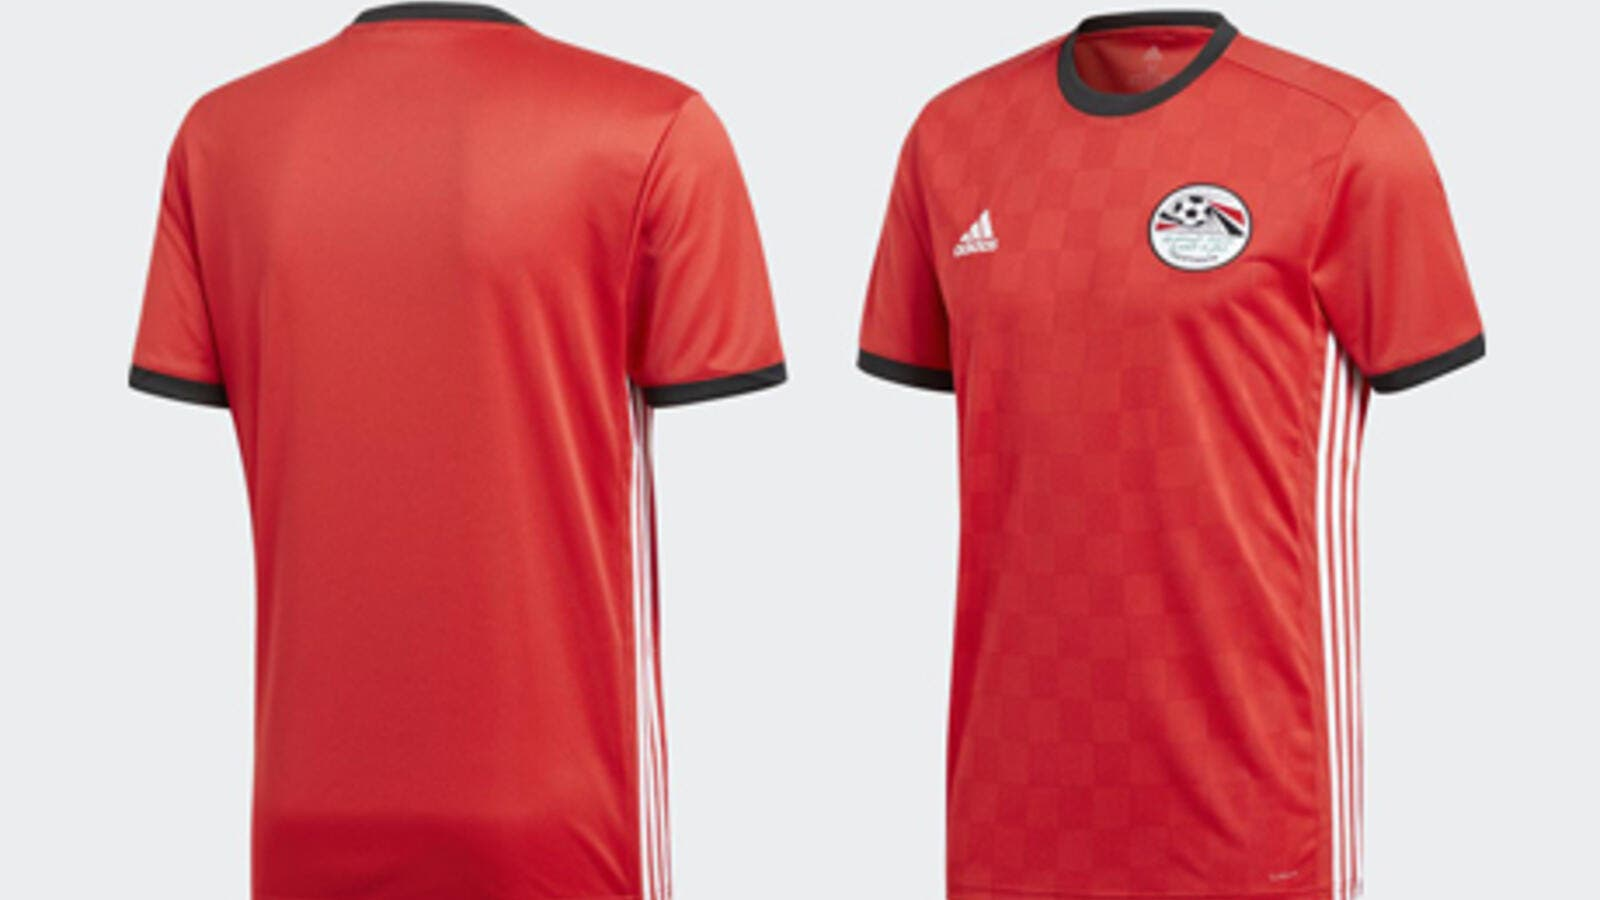 brand new 69ef4 09fde New Design of Egypt's World Cup Kit Draws Stinging Criticism ...